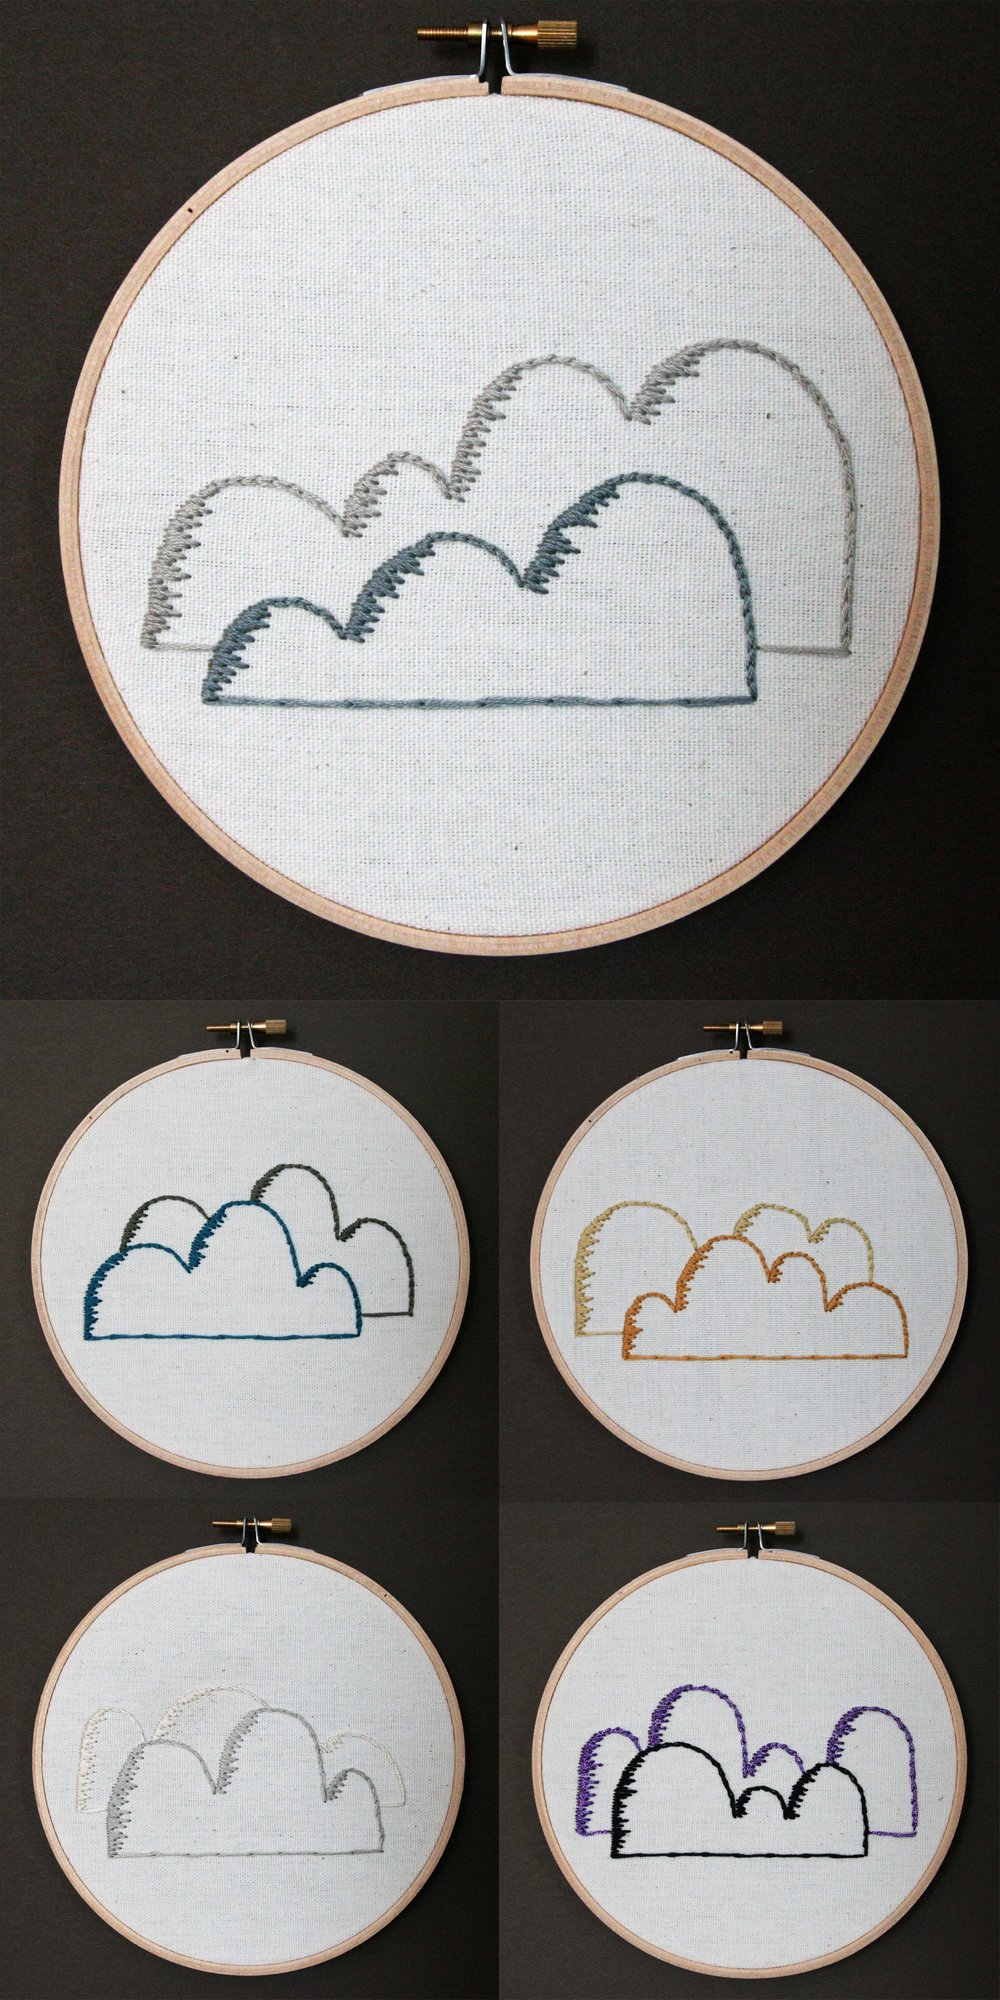 Clouds | embroidery on canvas | $25/each